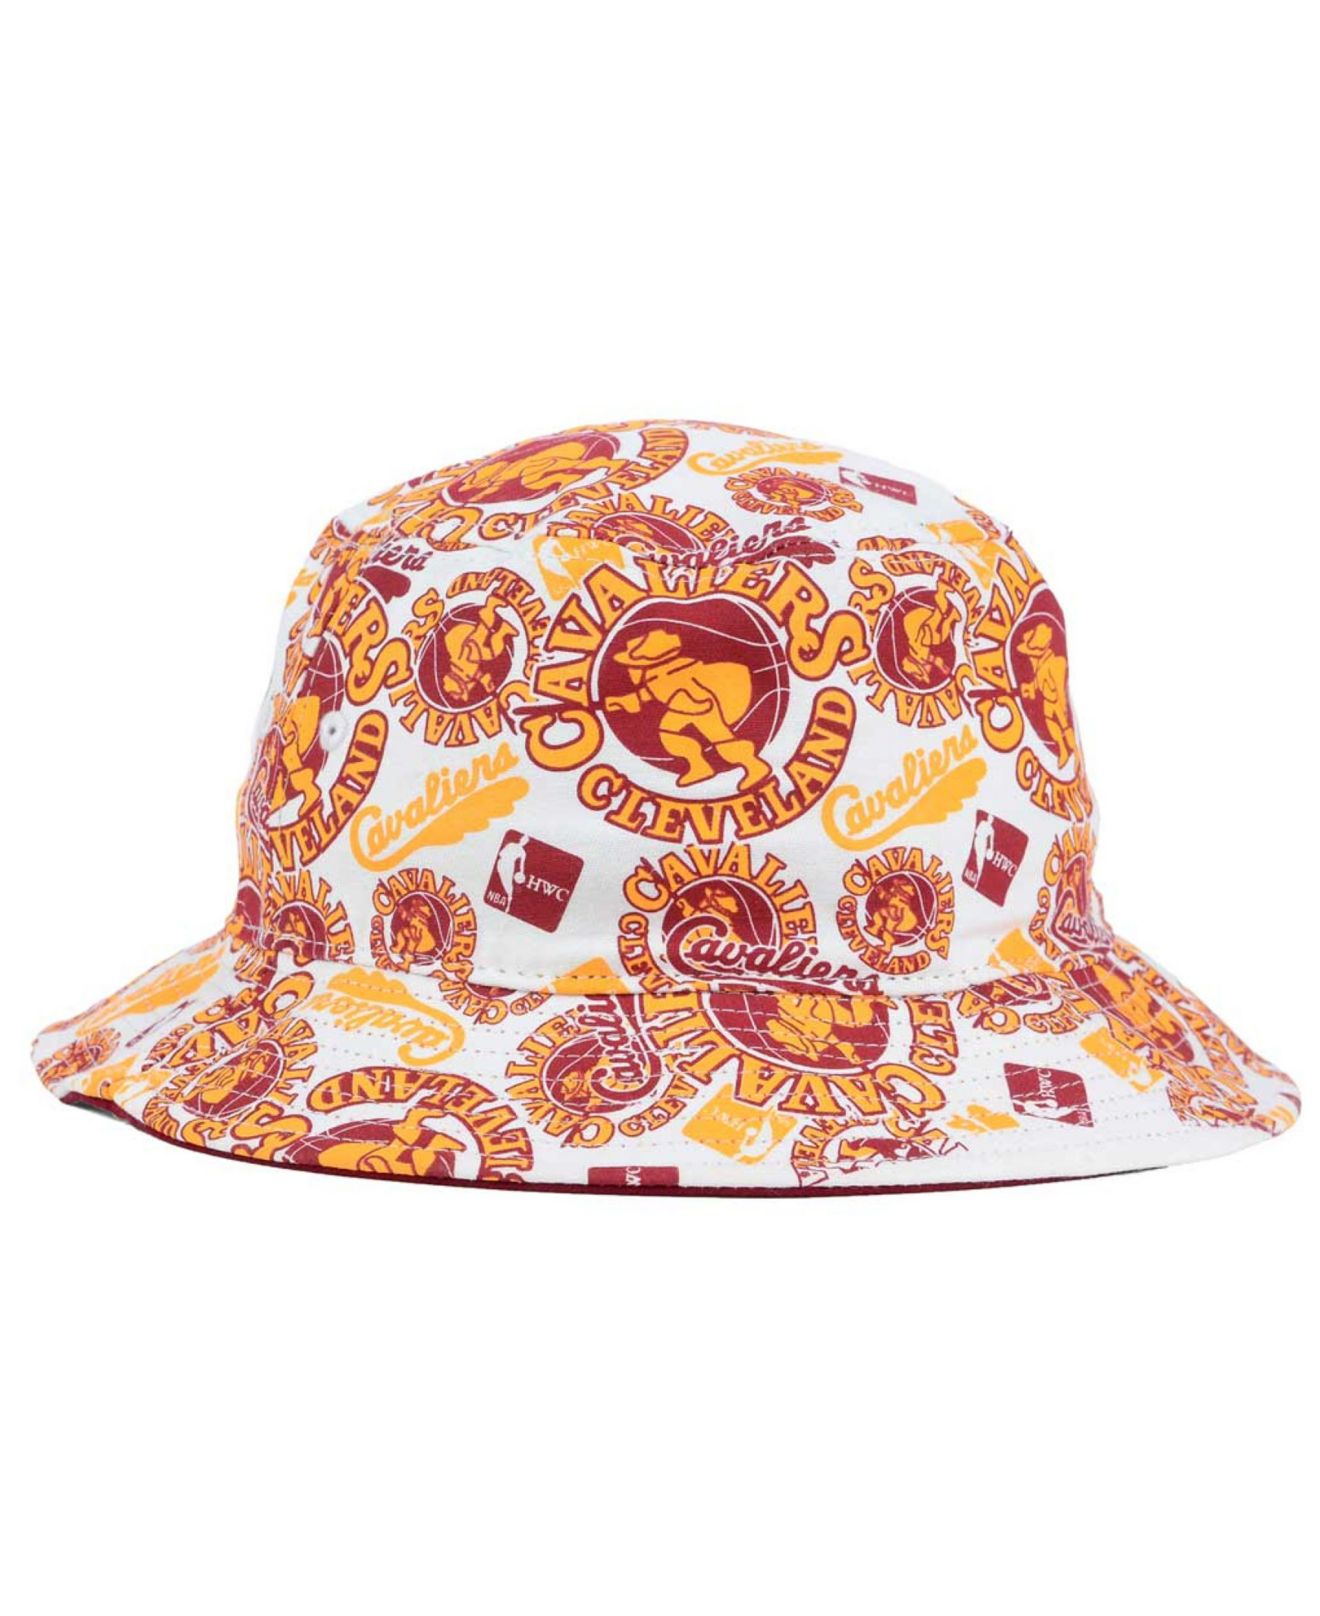 20c2976e622cd ... closeout lyst 47 brand cleveland cavaliers bravado bucket hat in purple  for men a4883 b7912